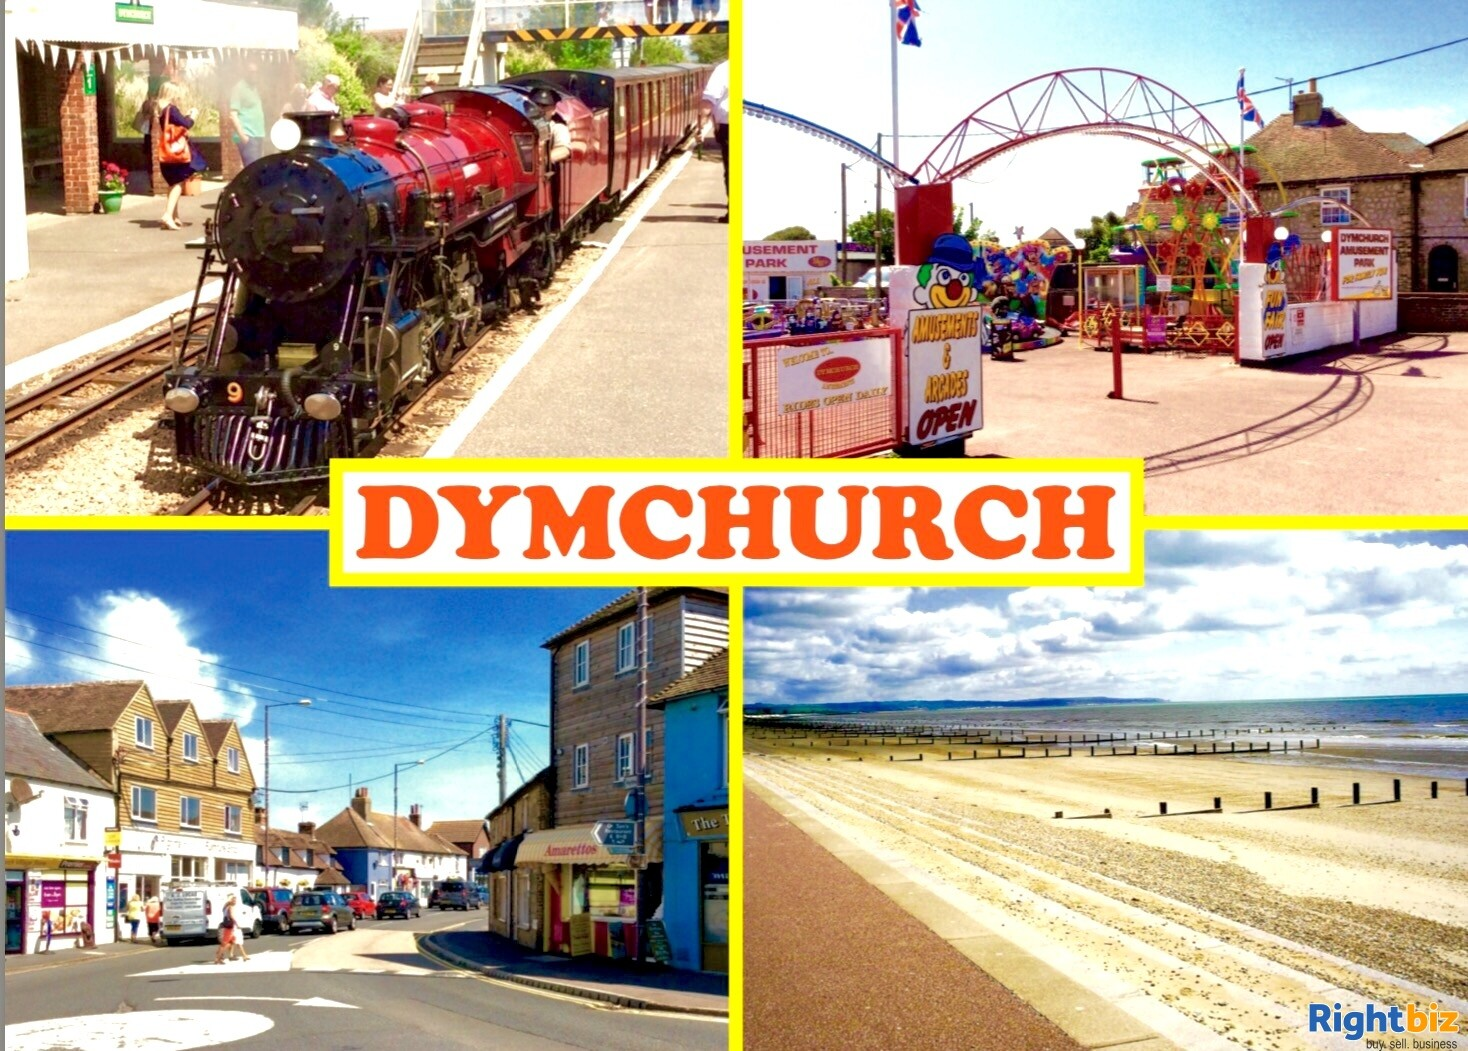 FREEHOLD ICE CREAM SHOP WITH 1 BED ACCOMMODATION FOR SALE DYMCHURCH KENT SOUTH COAST - Image 14